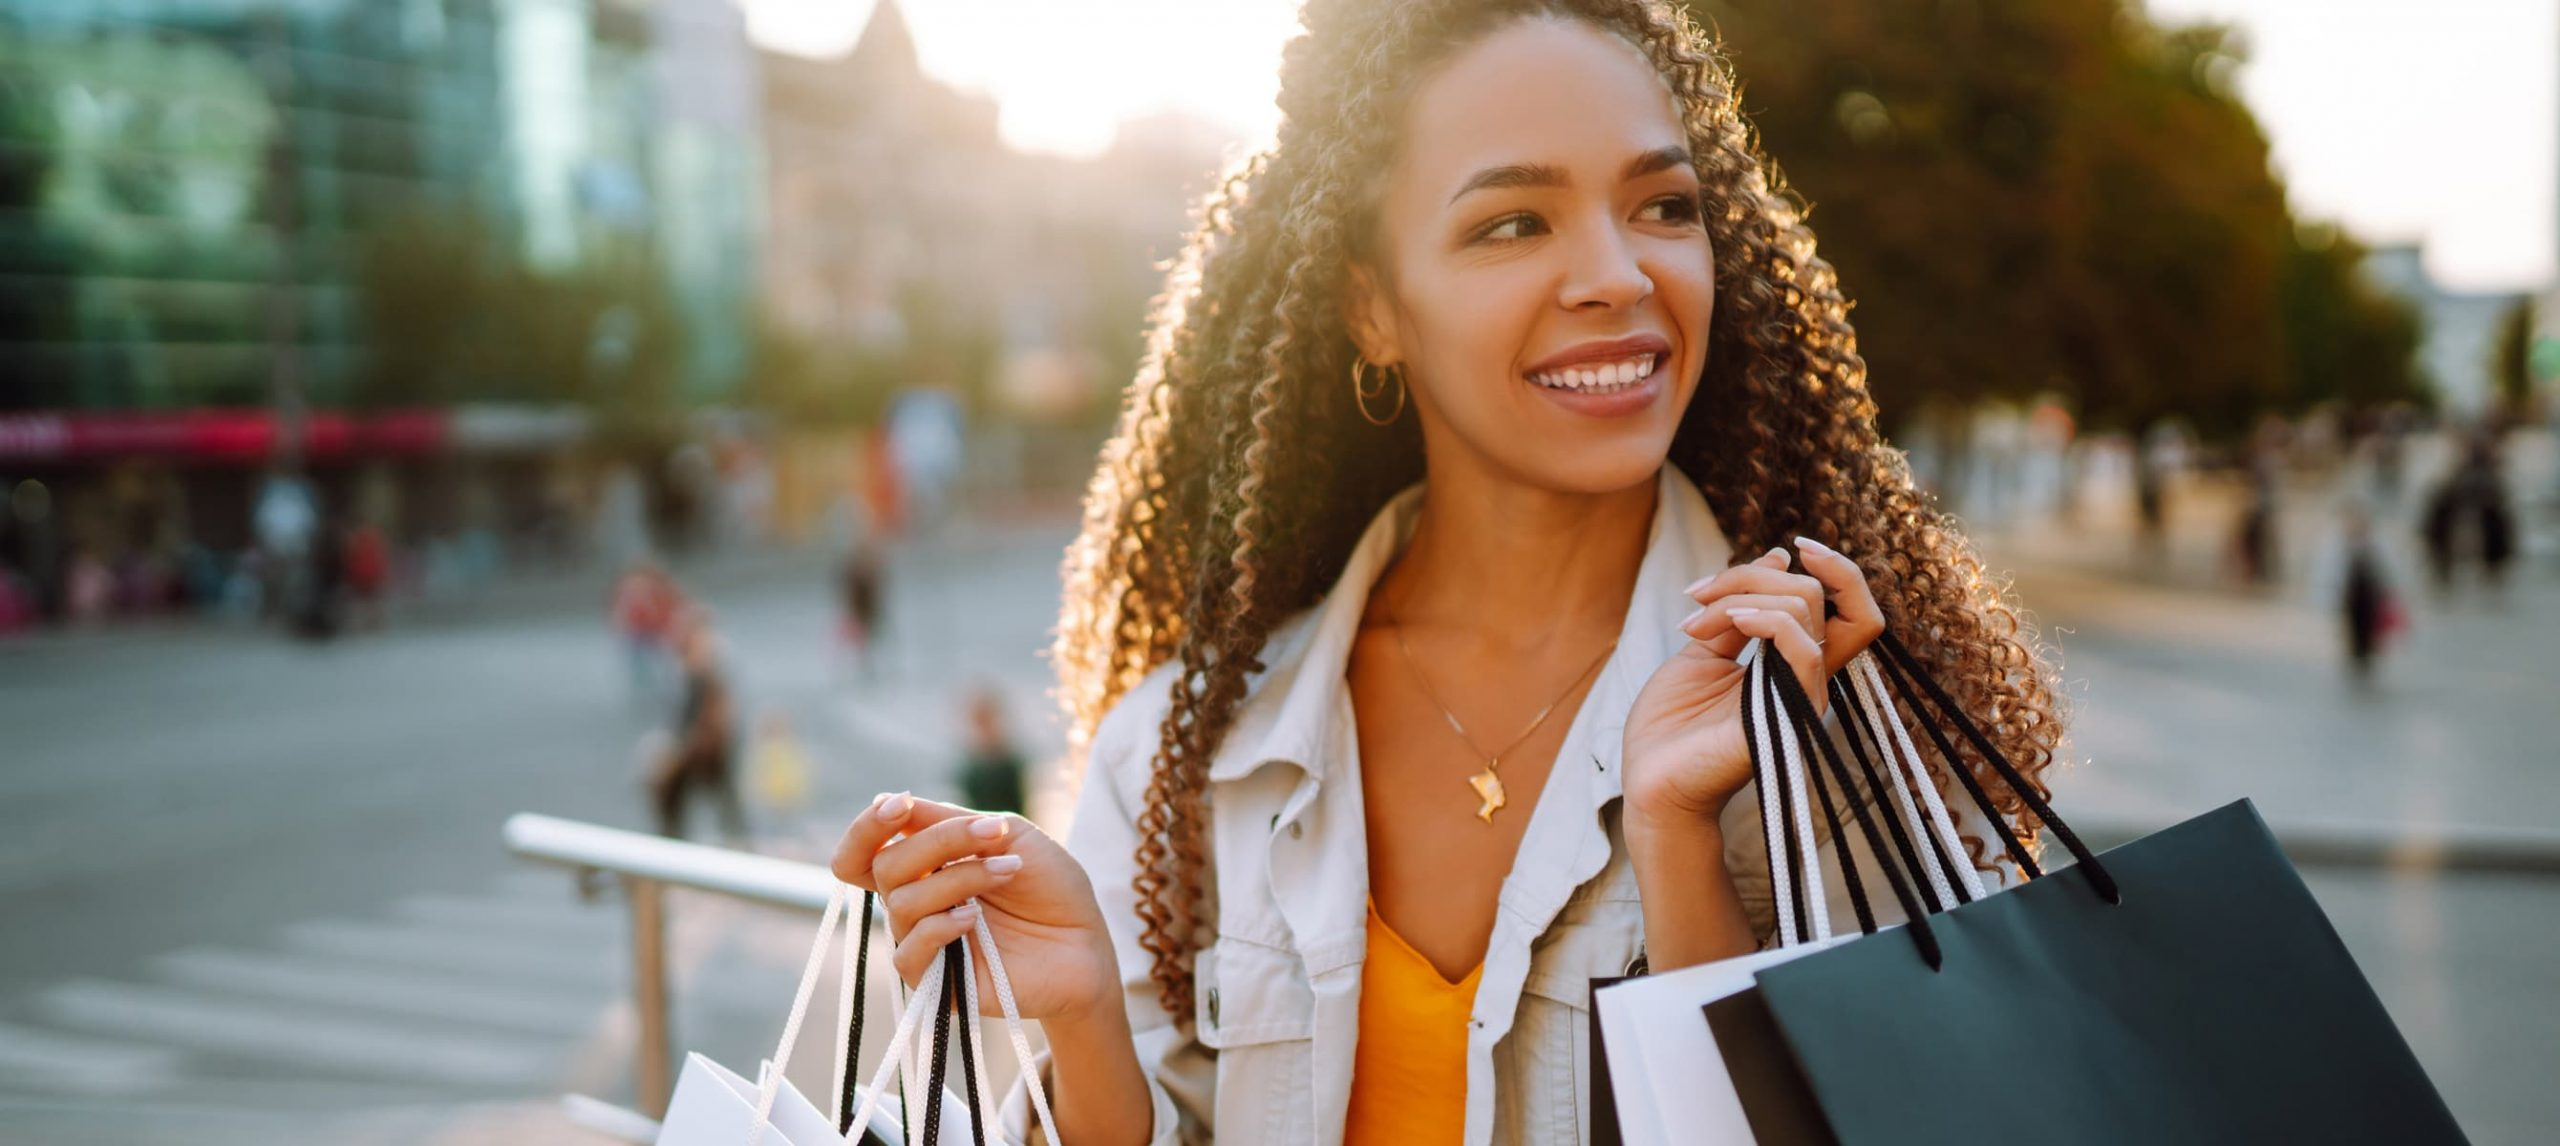 The 10 Best Shopping Destinations in The USA